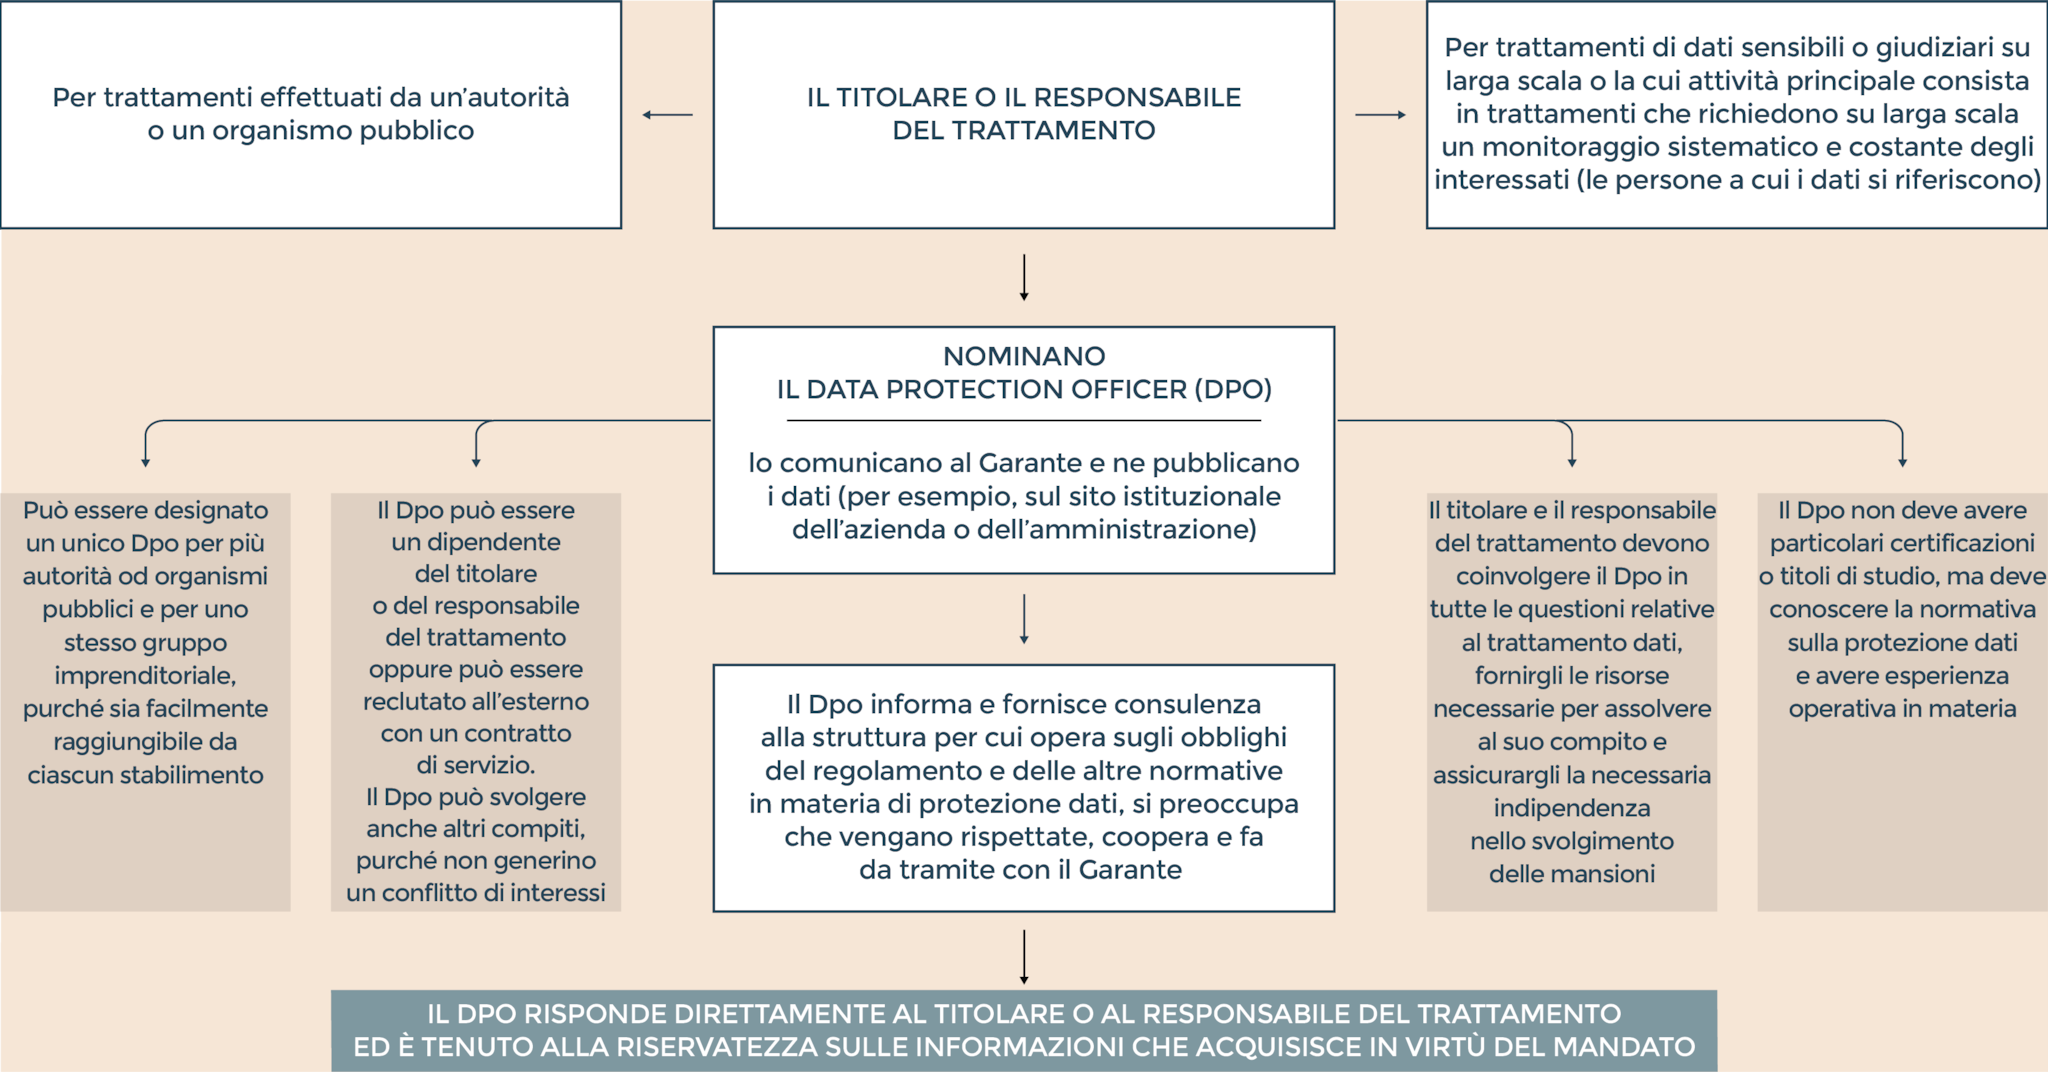 Il battesimo e i compiti del «Data protection officer»